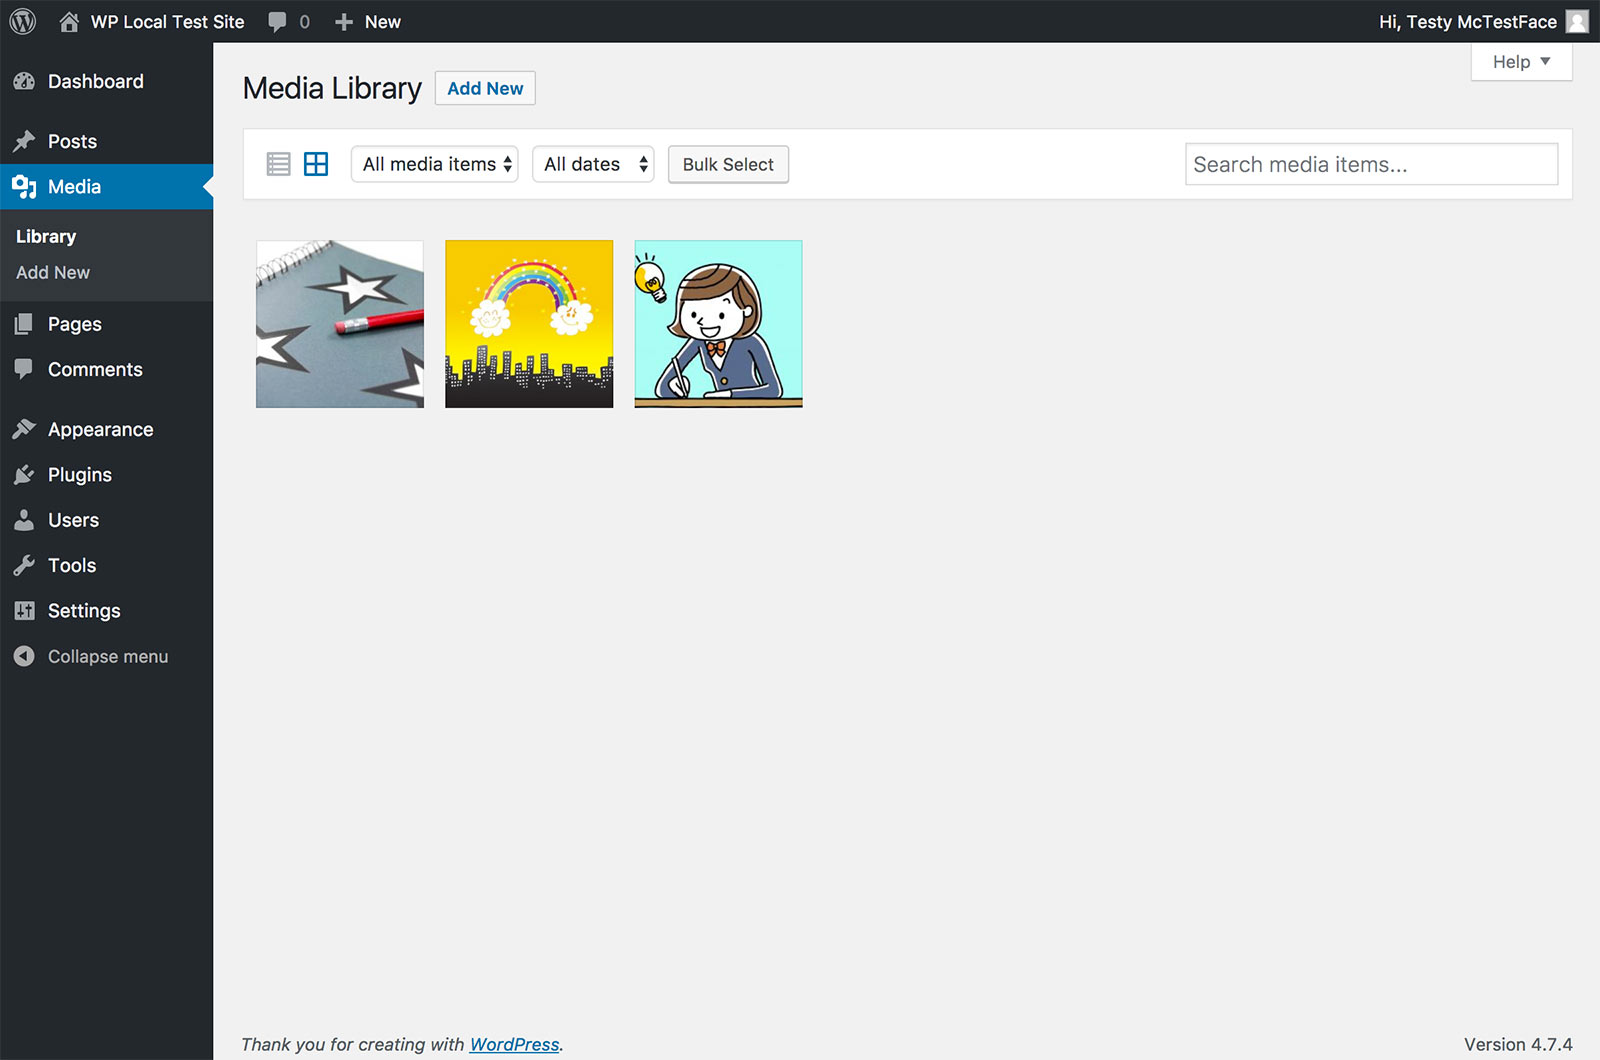 Screenshot showing a user who has uploaded three images to the media library